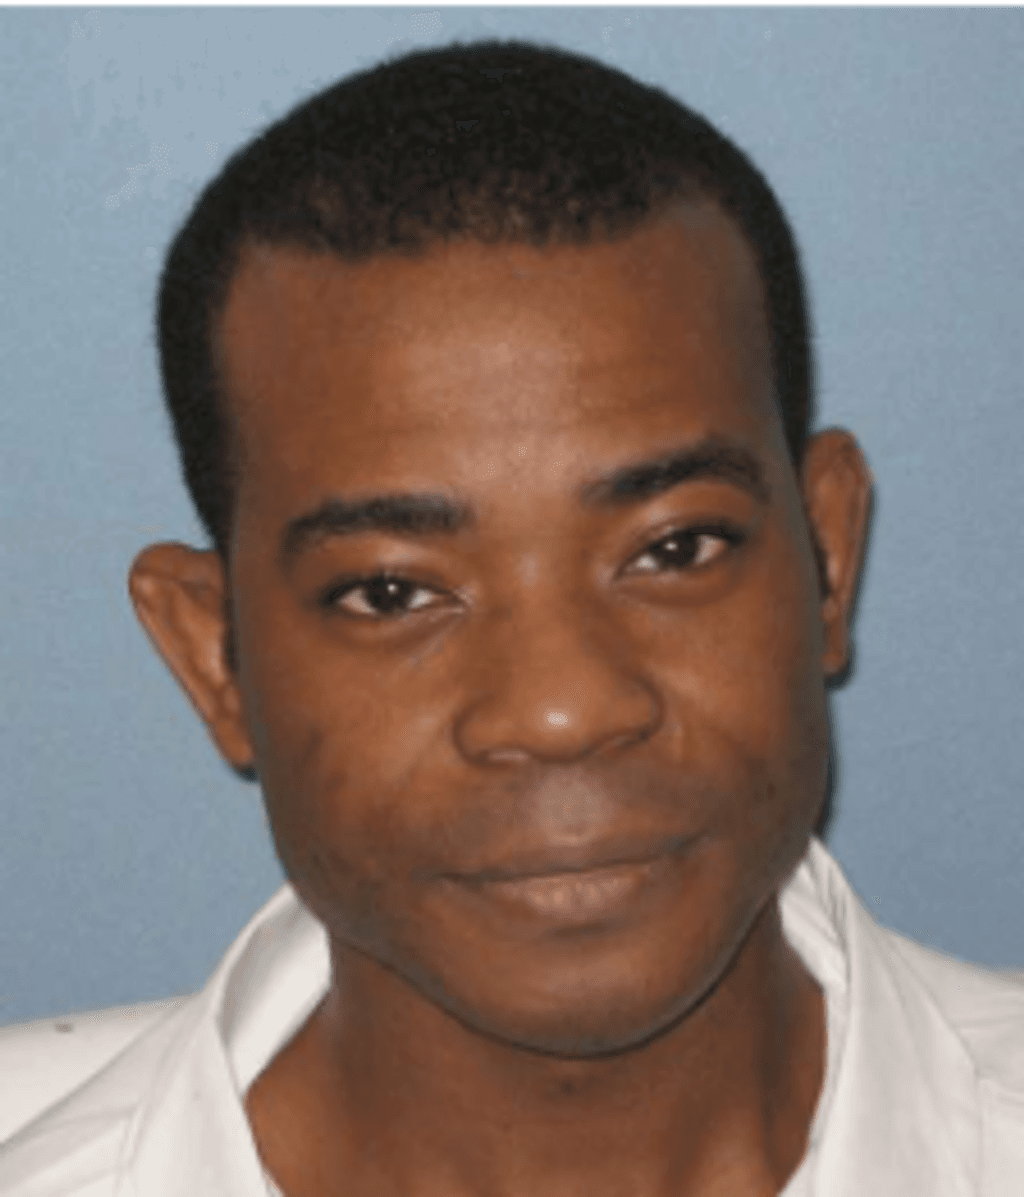 Alabama Set to Execute Nathaniel Woods Despite Claims of Innocence, Police Misconduct